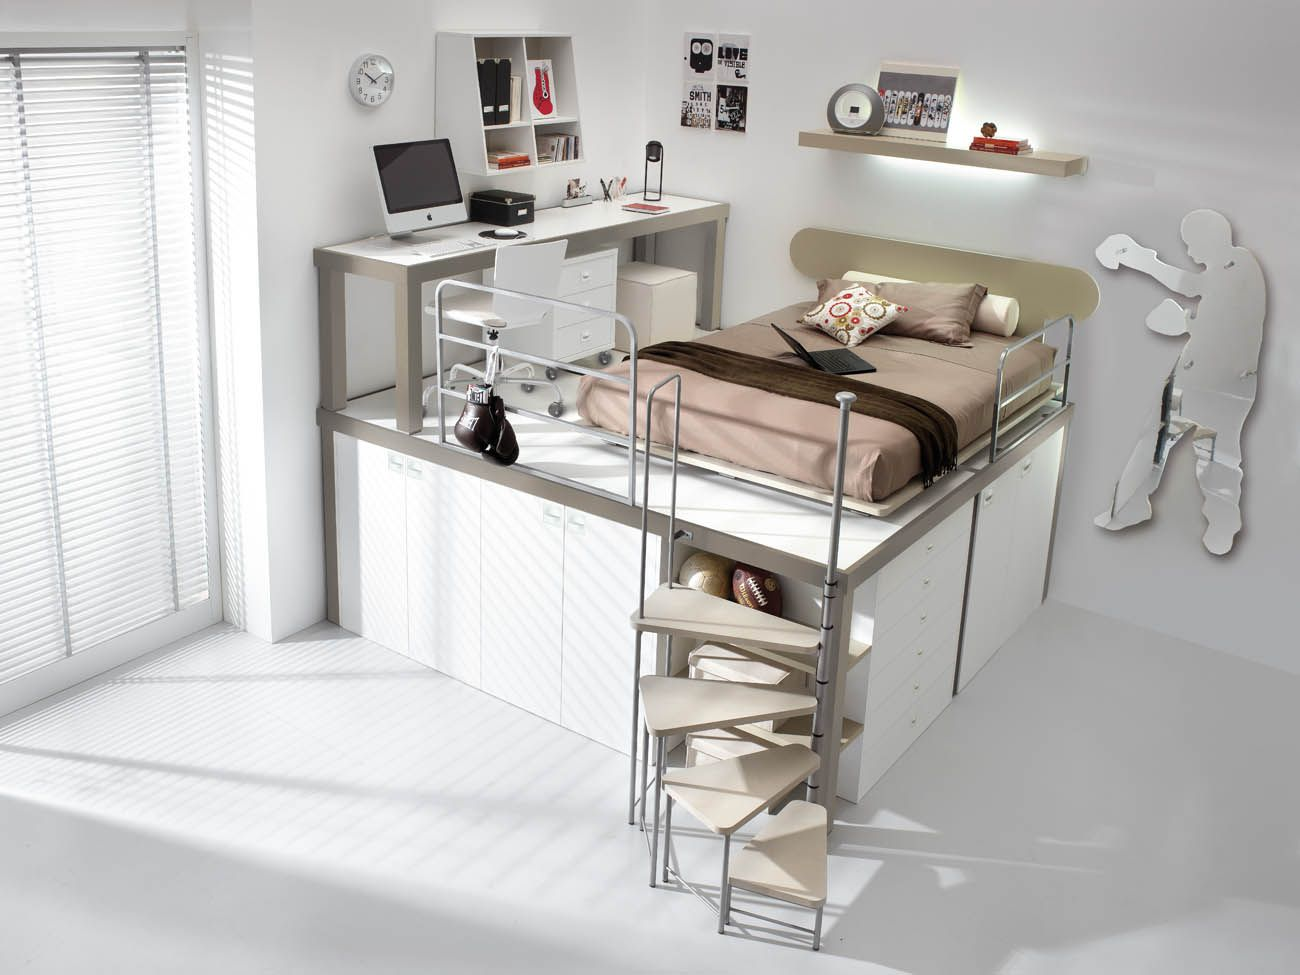 Loft bed with desk ideas Tumidei Spa could you image a dorm room like tthis  Ideas for the